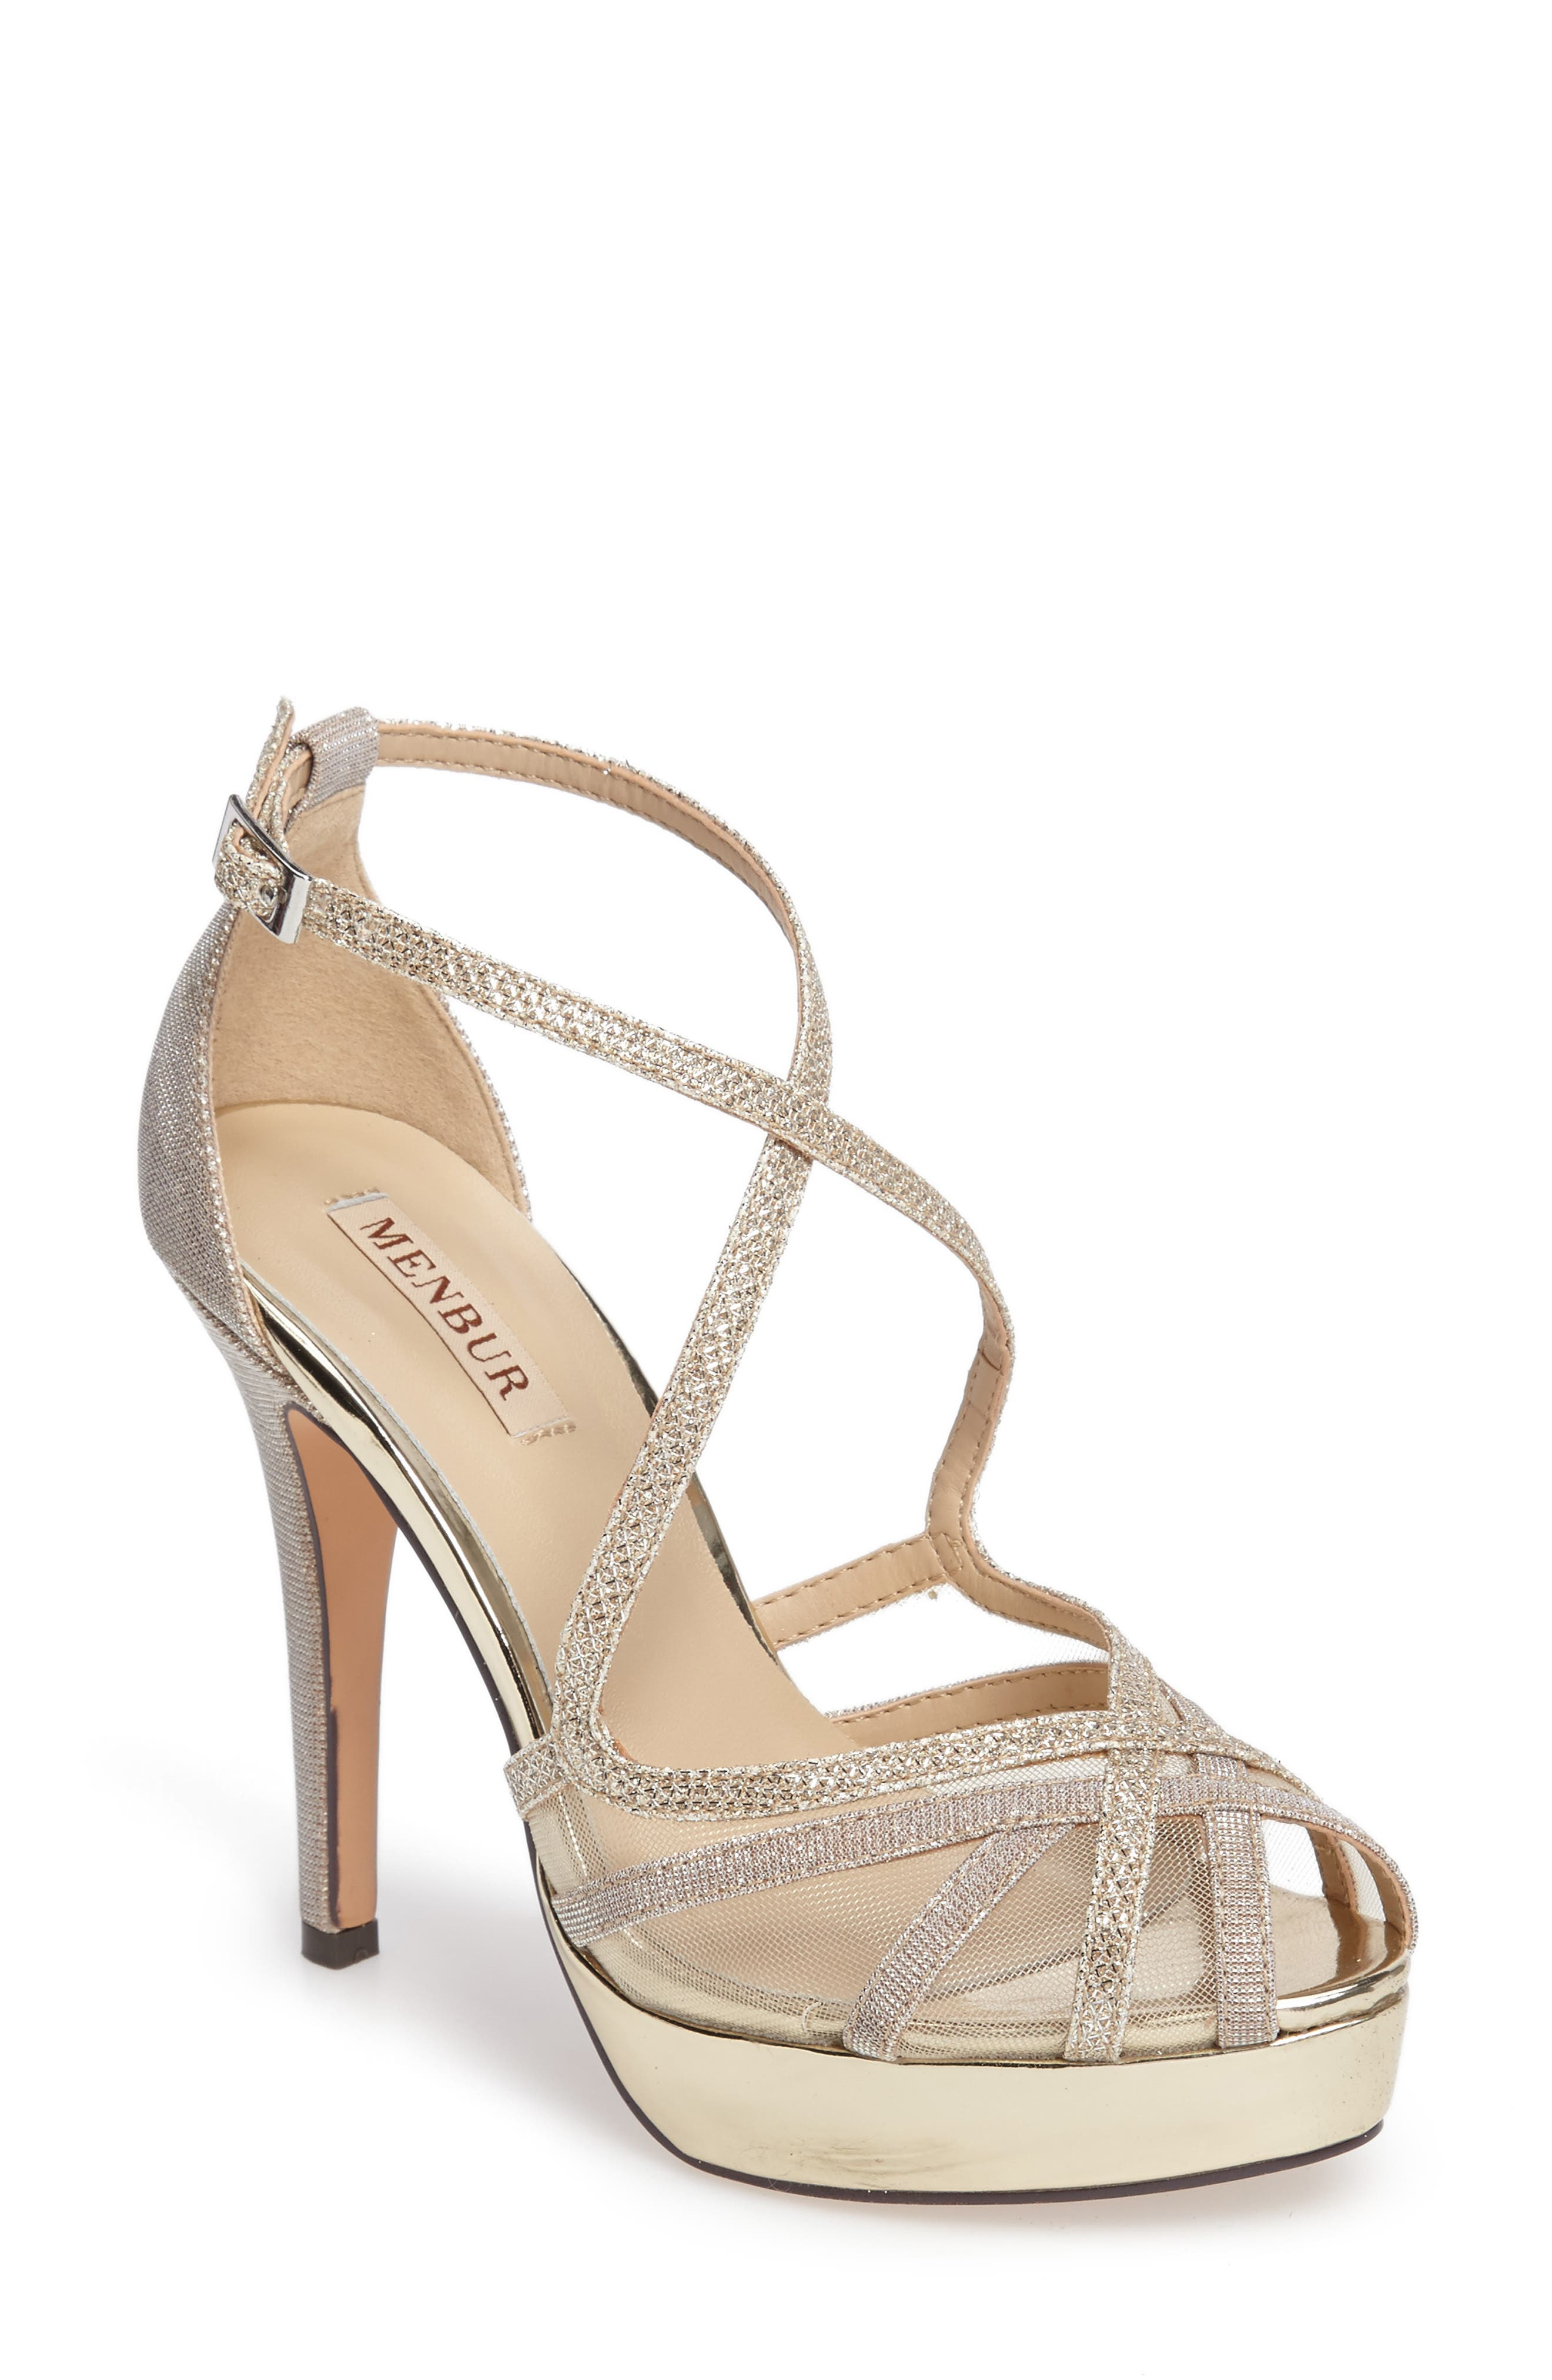 MENBUR Rosa Platform Evening Sandal, Main, color, 021